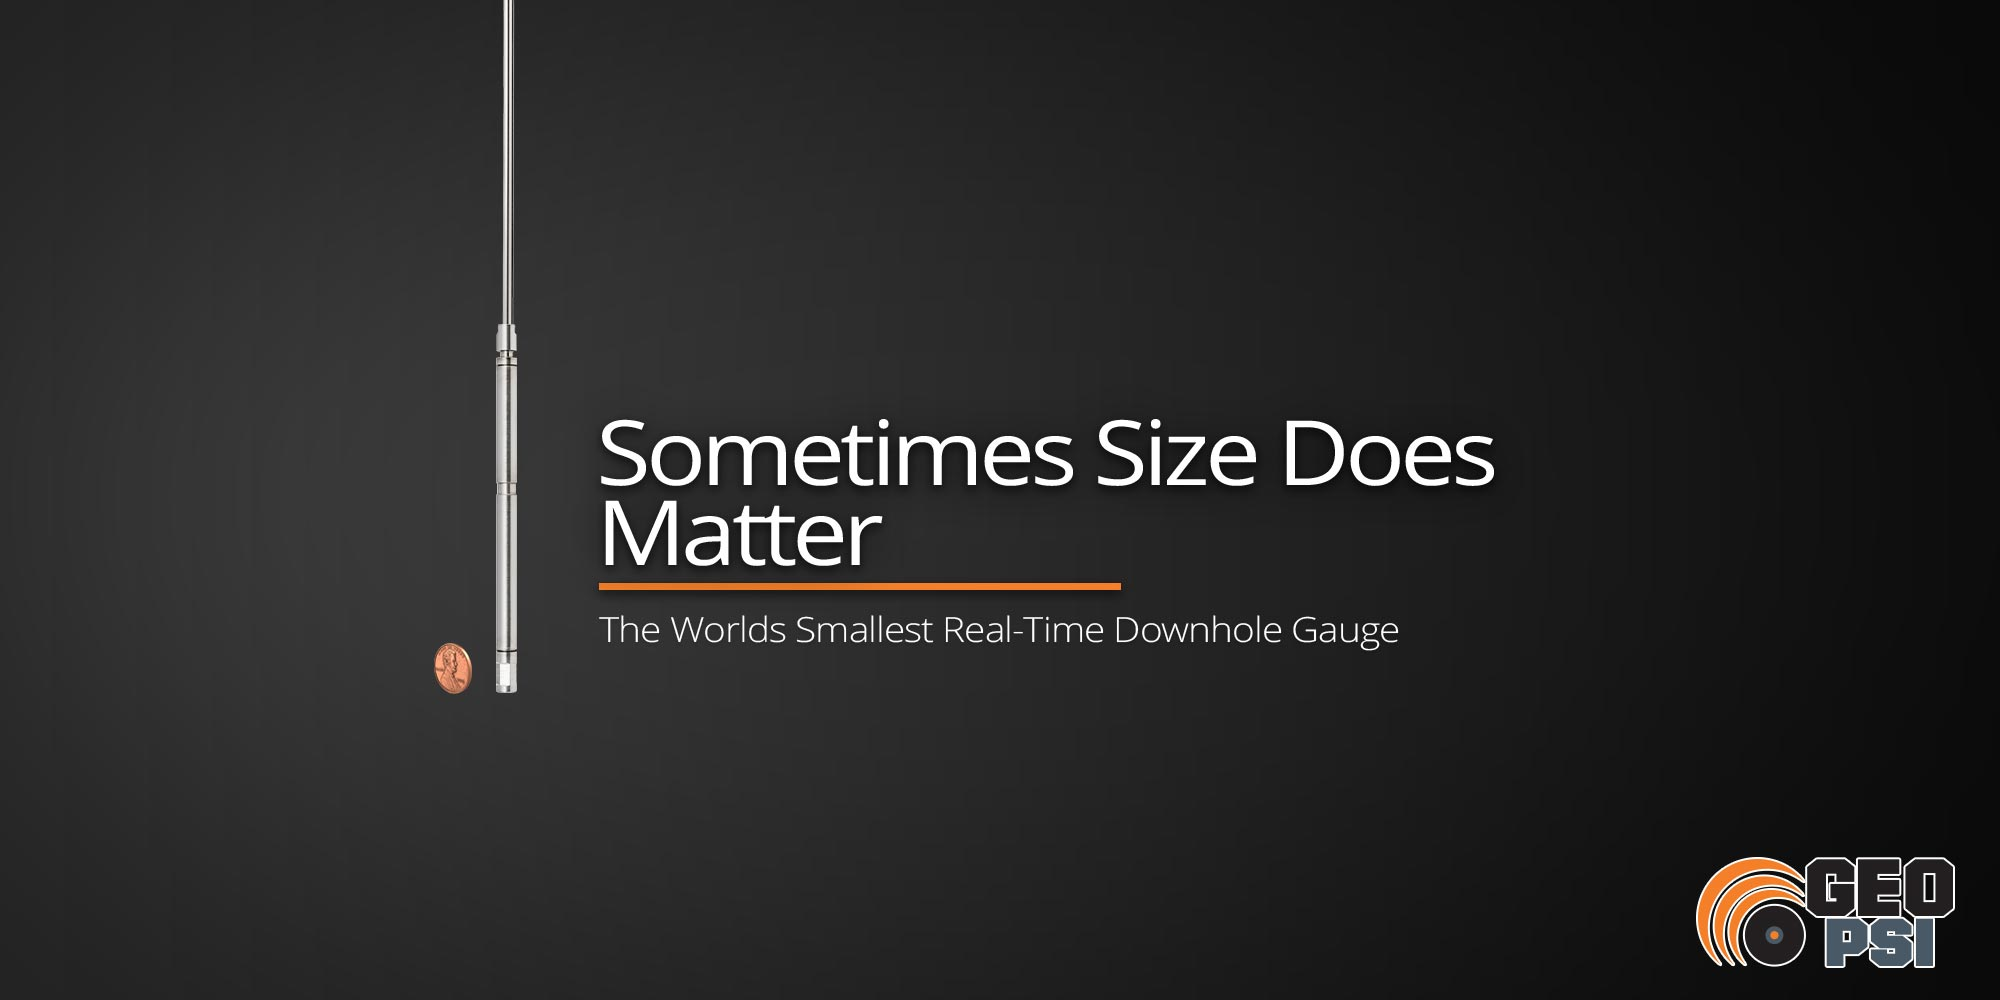 The Worlds Smallest Real-Time Downhole Gauge